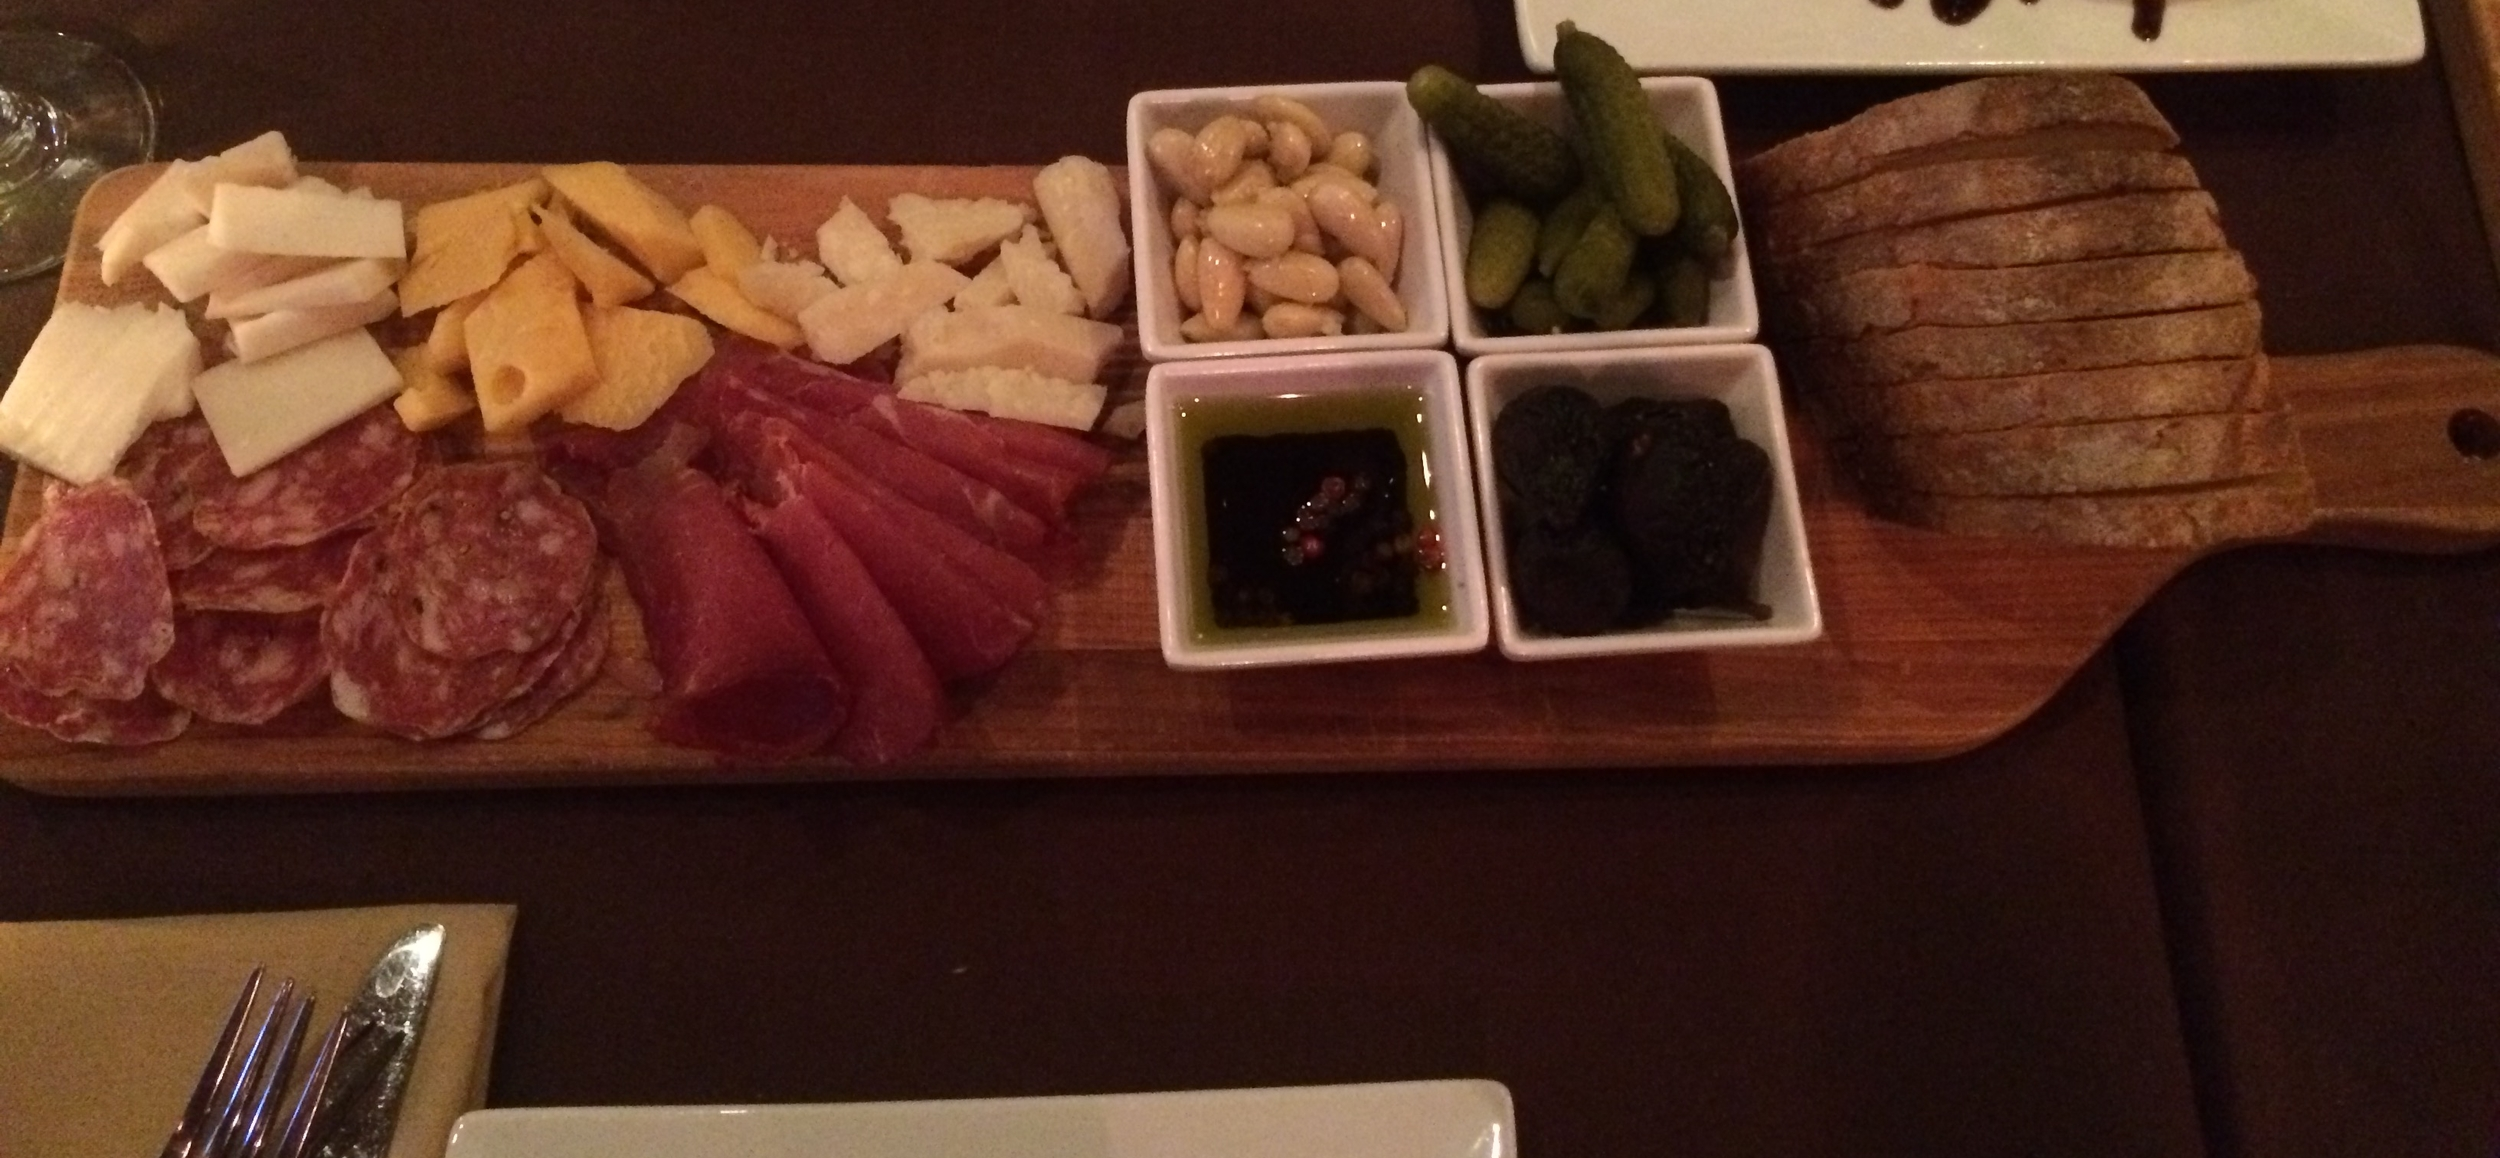 A delicious cheese and meat board, piled with a variety of delectable offerings.